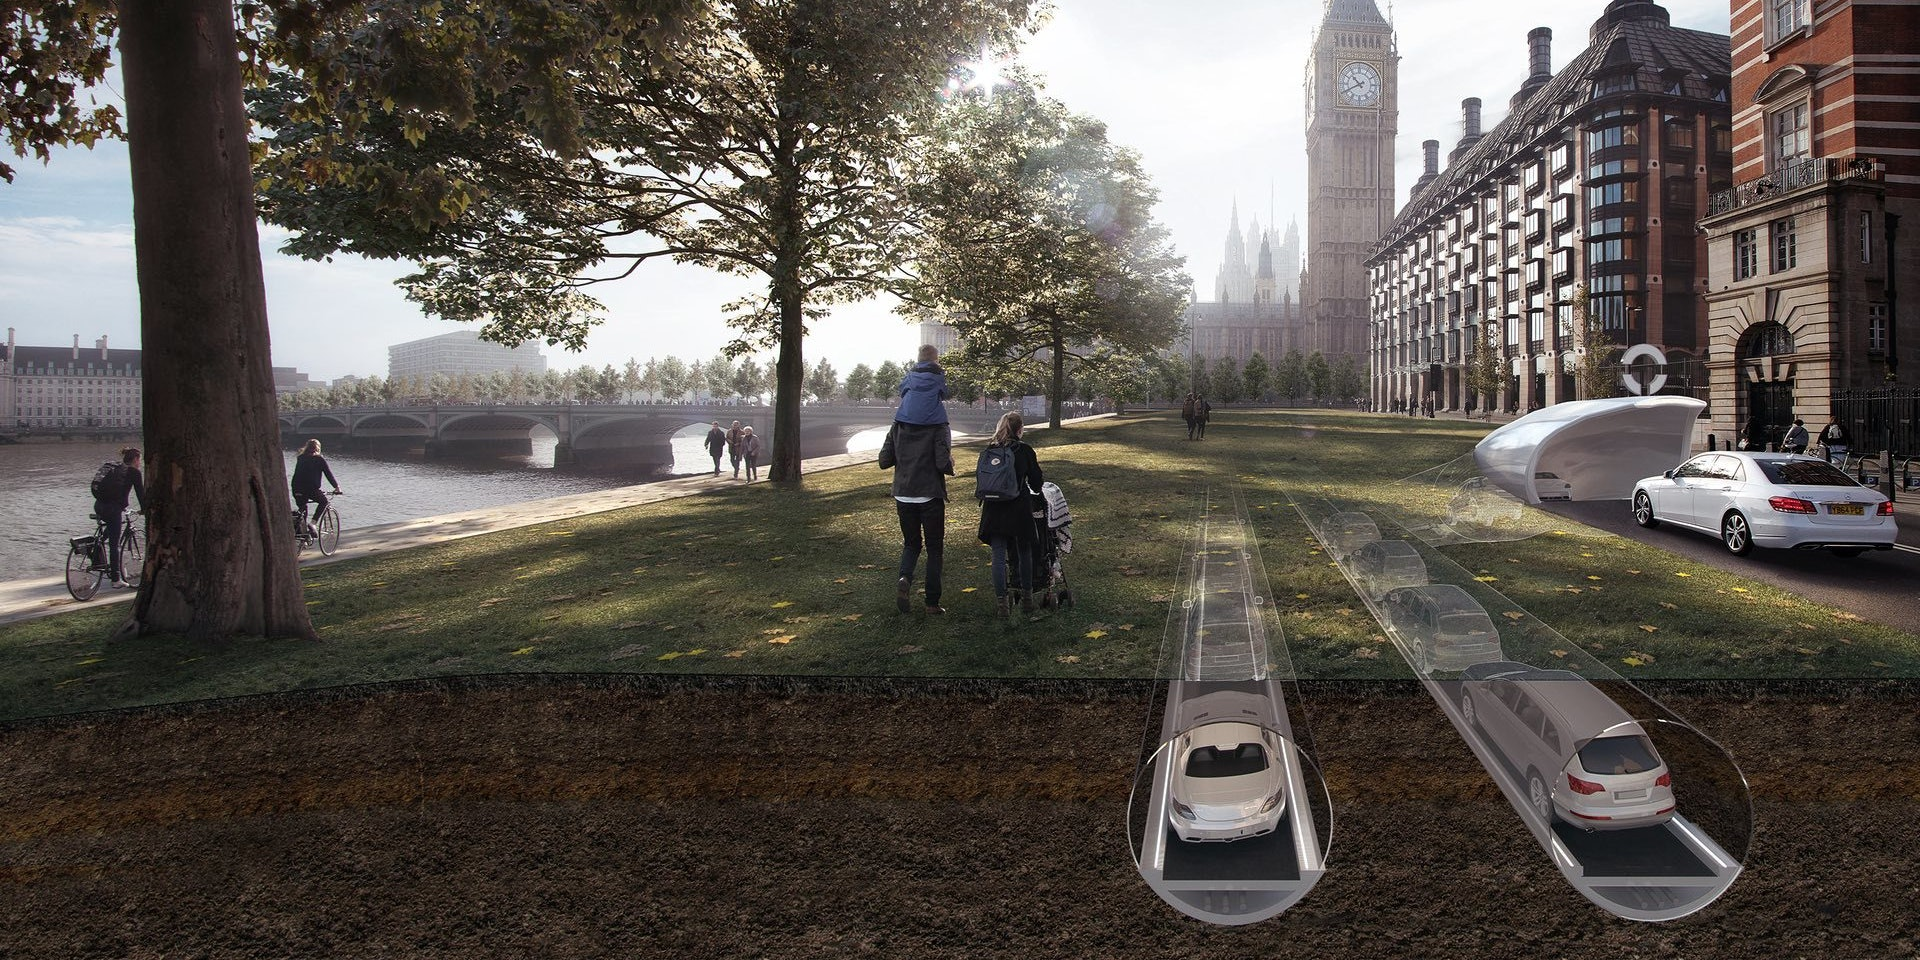 There's a Plan to Turn London's Roads Into Underground Tubes